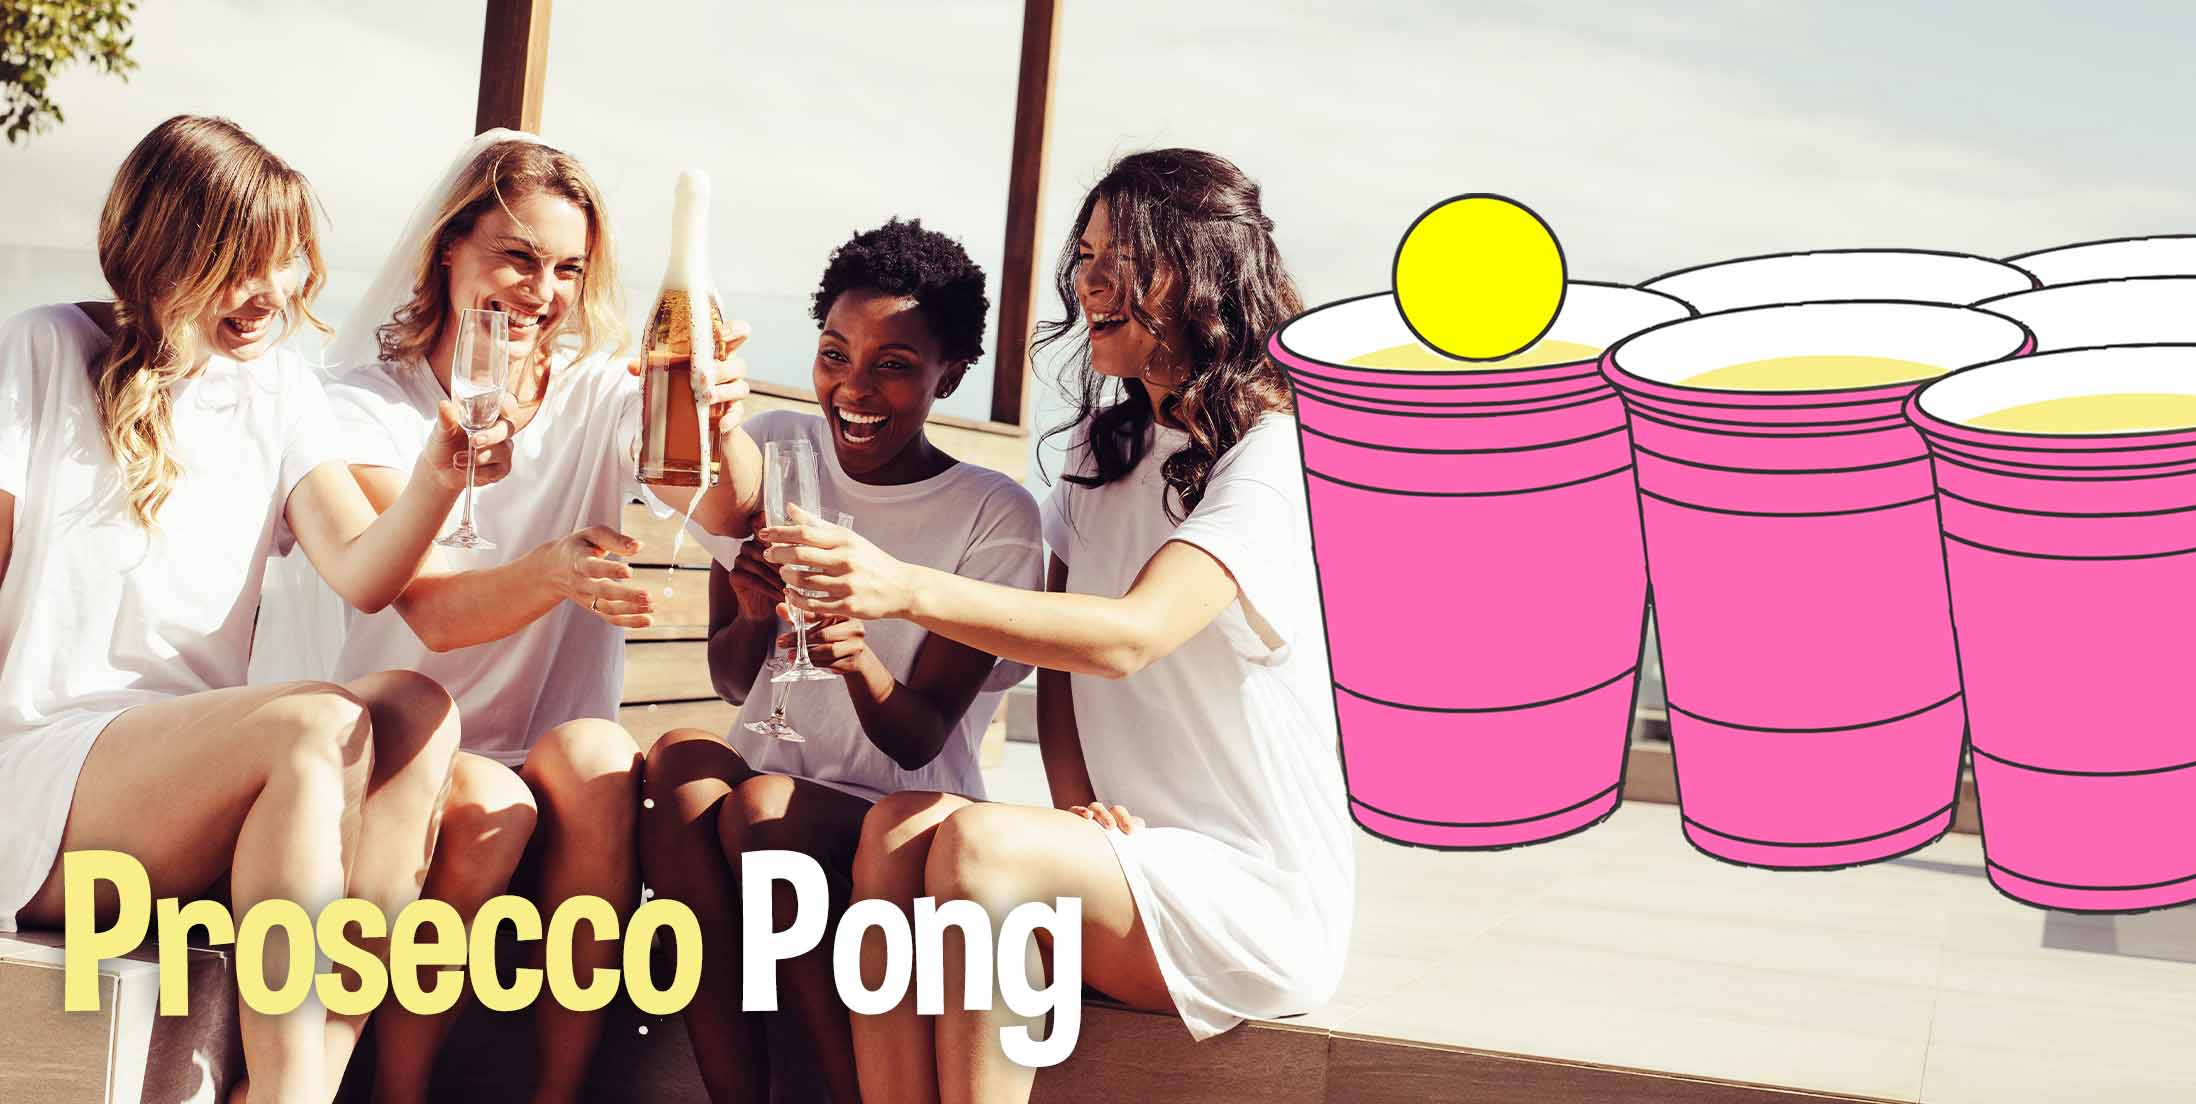 Prosecco Pong Hen Party Drinking Game